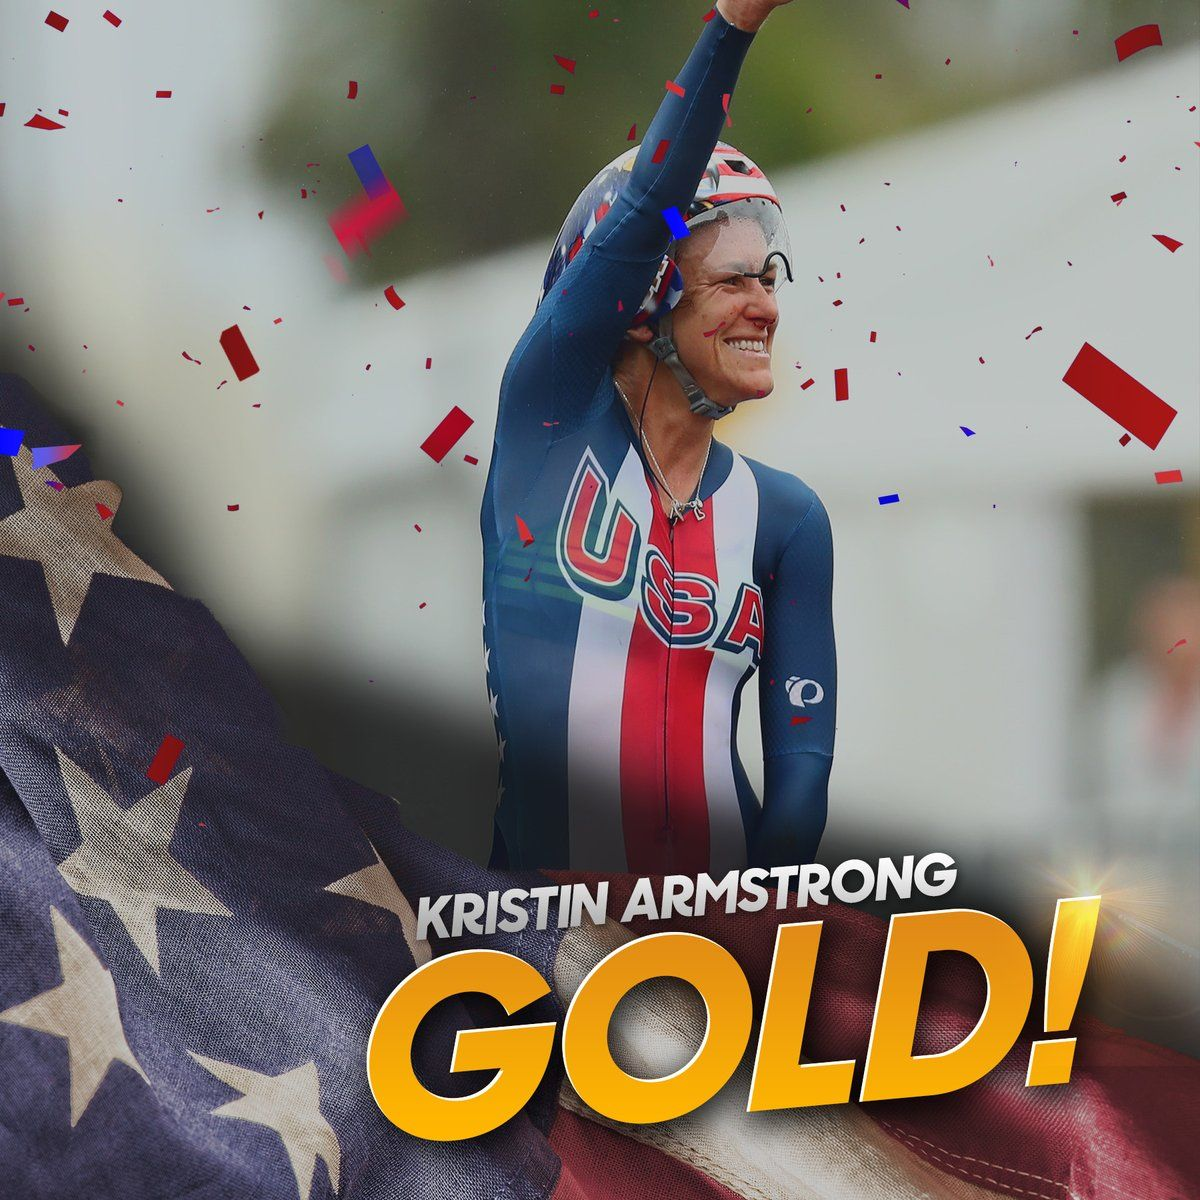 NBC Olympics NBCOlympics Aug 10 .k_armstrong wins gold